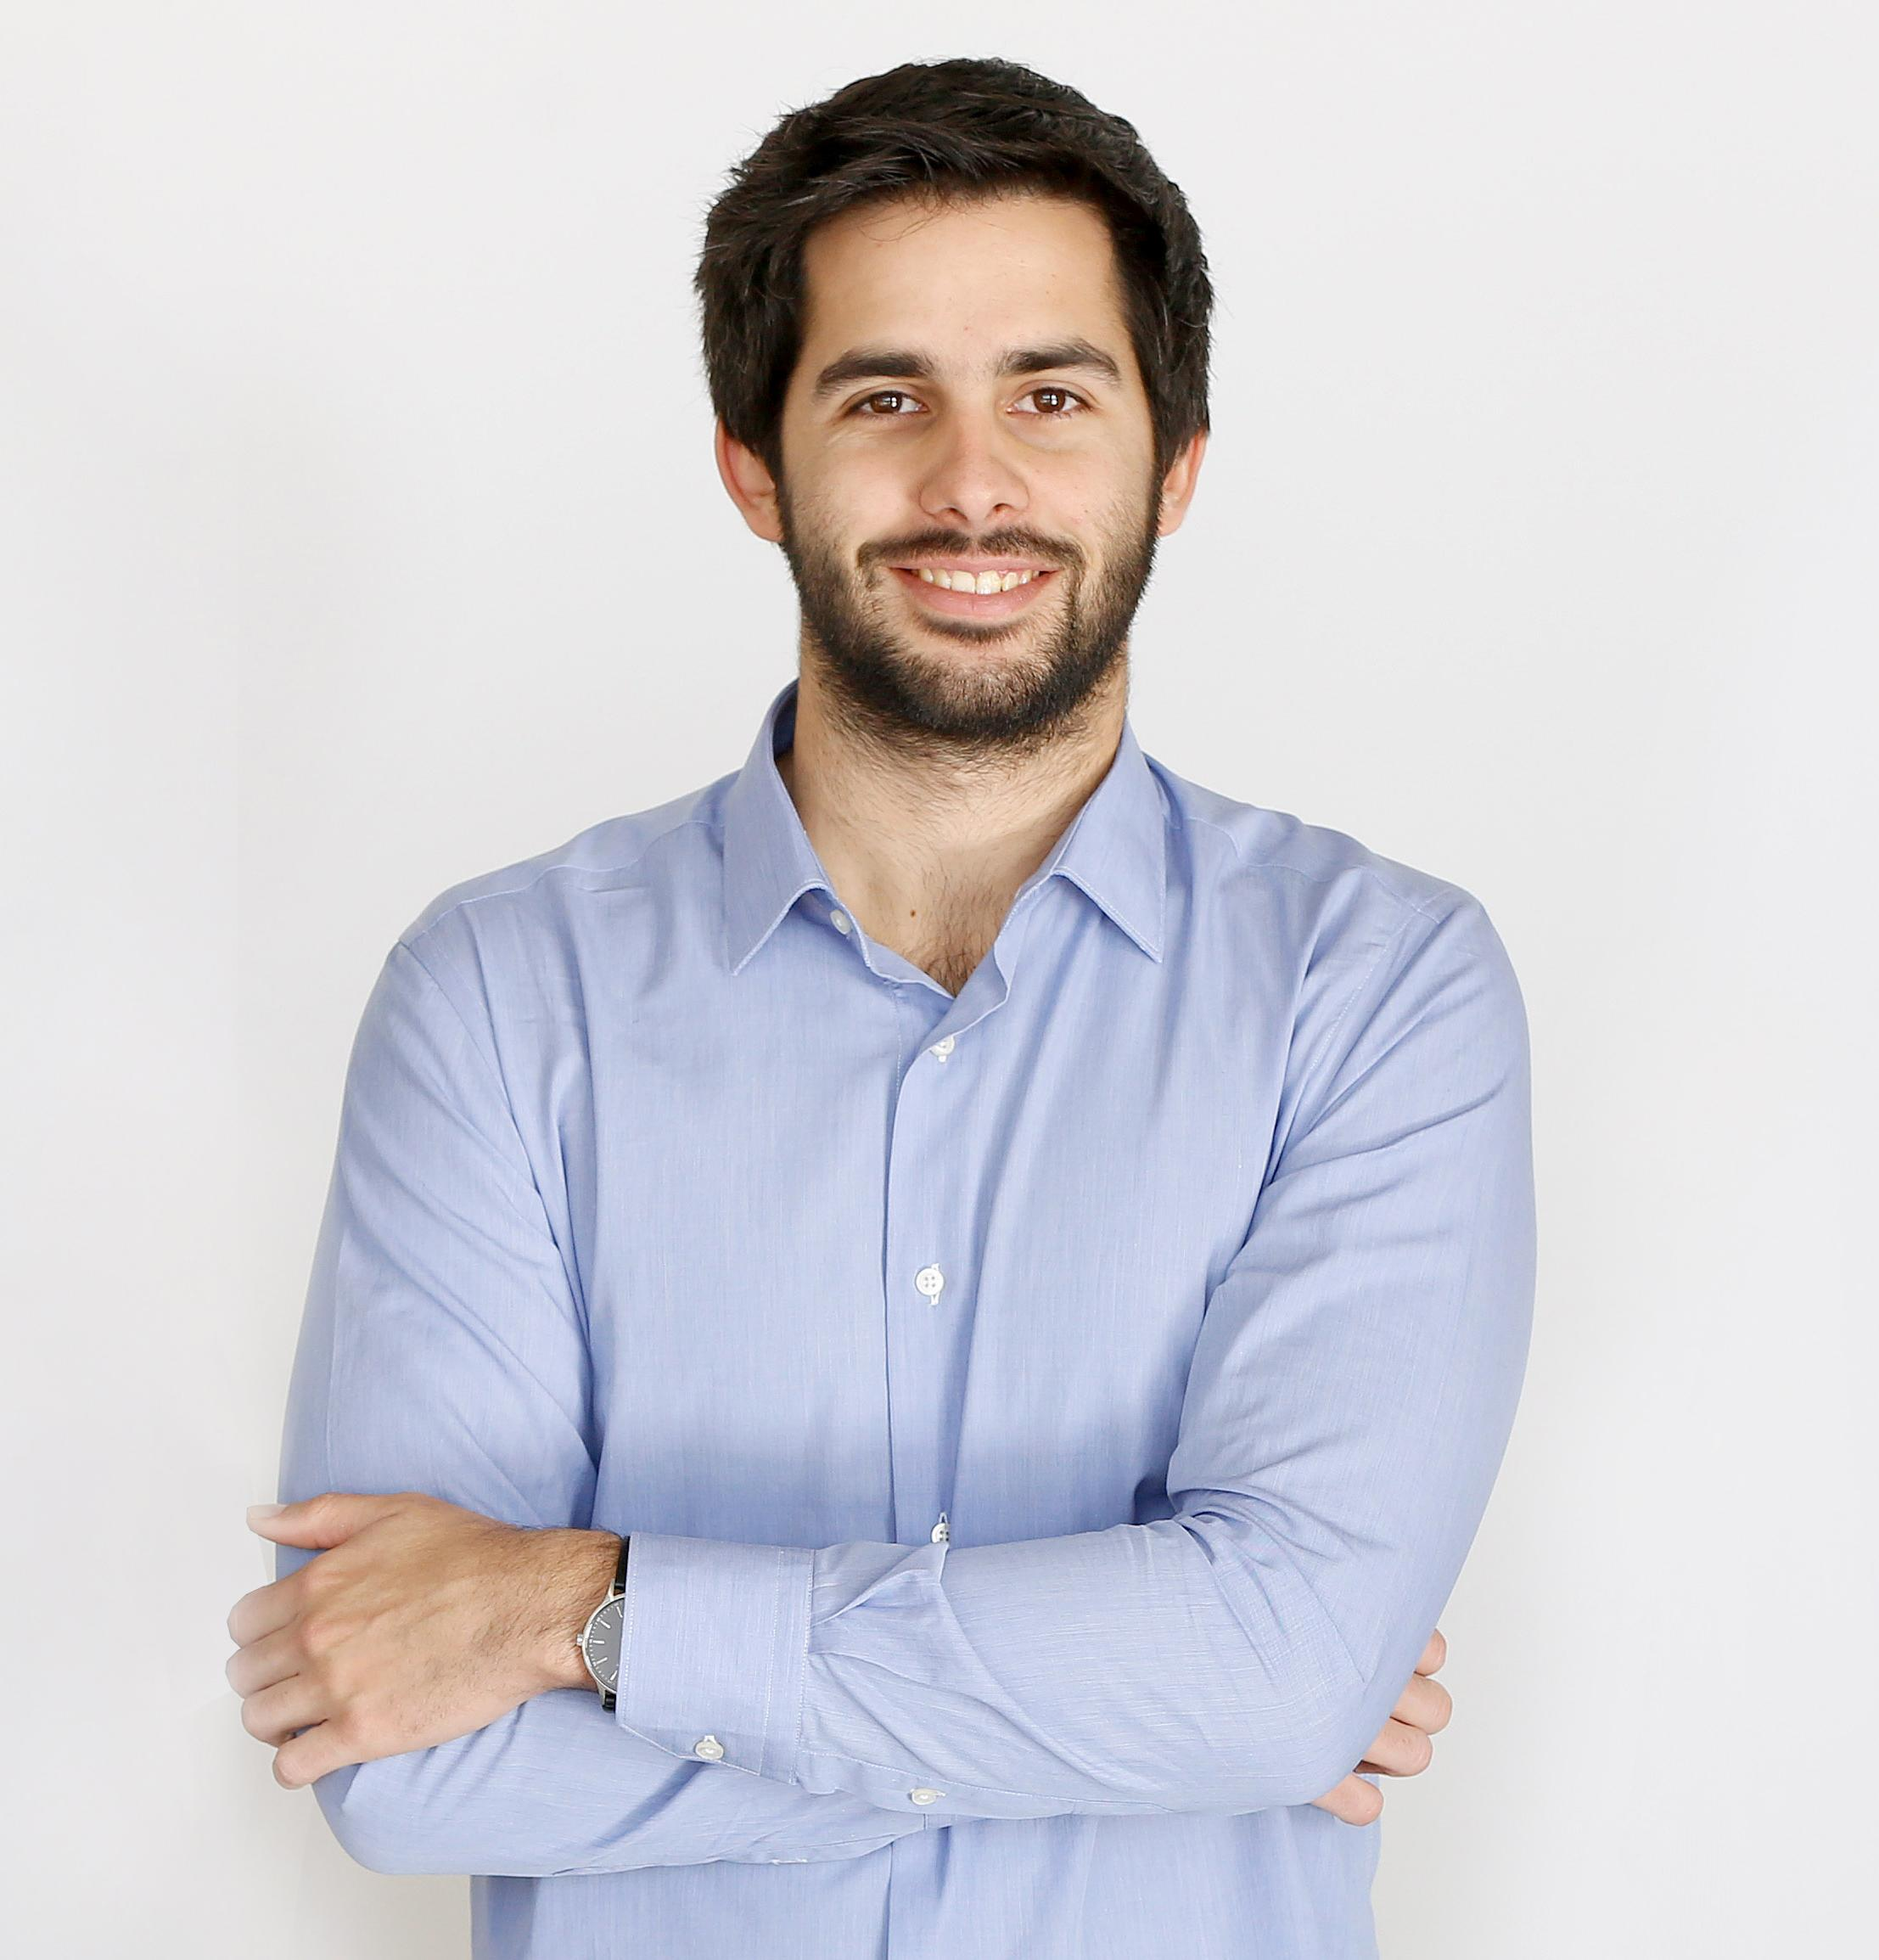 David Pistoni. CEO y co-fundador de Zeleros